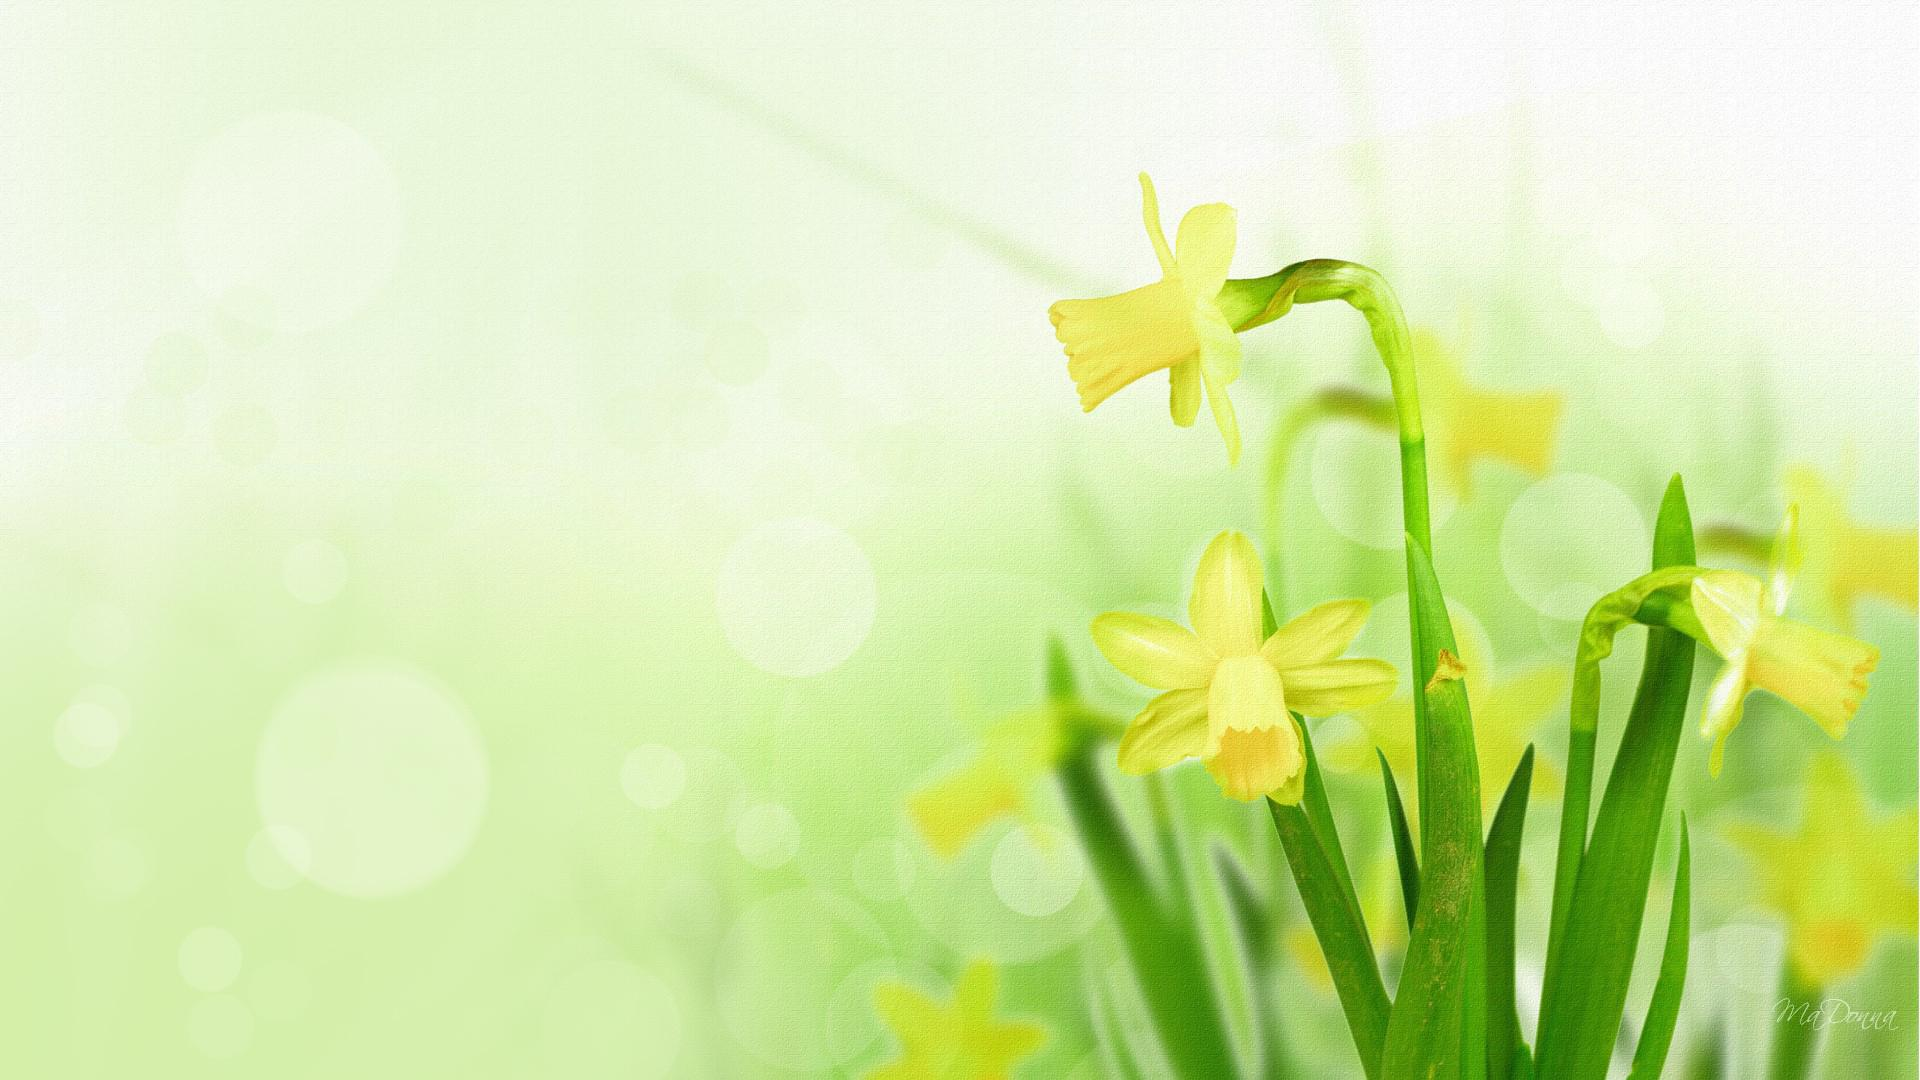 daffodils wallpapers - wallpaper cave